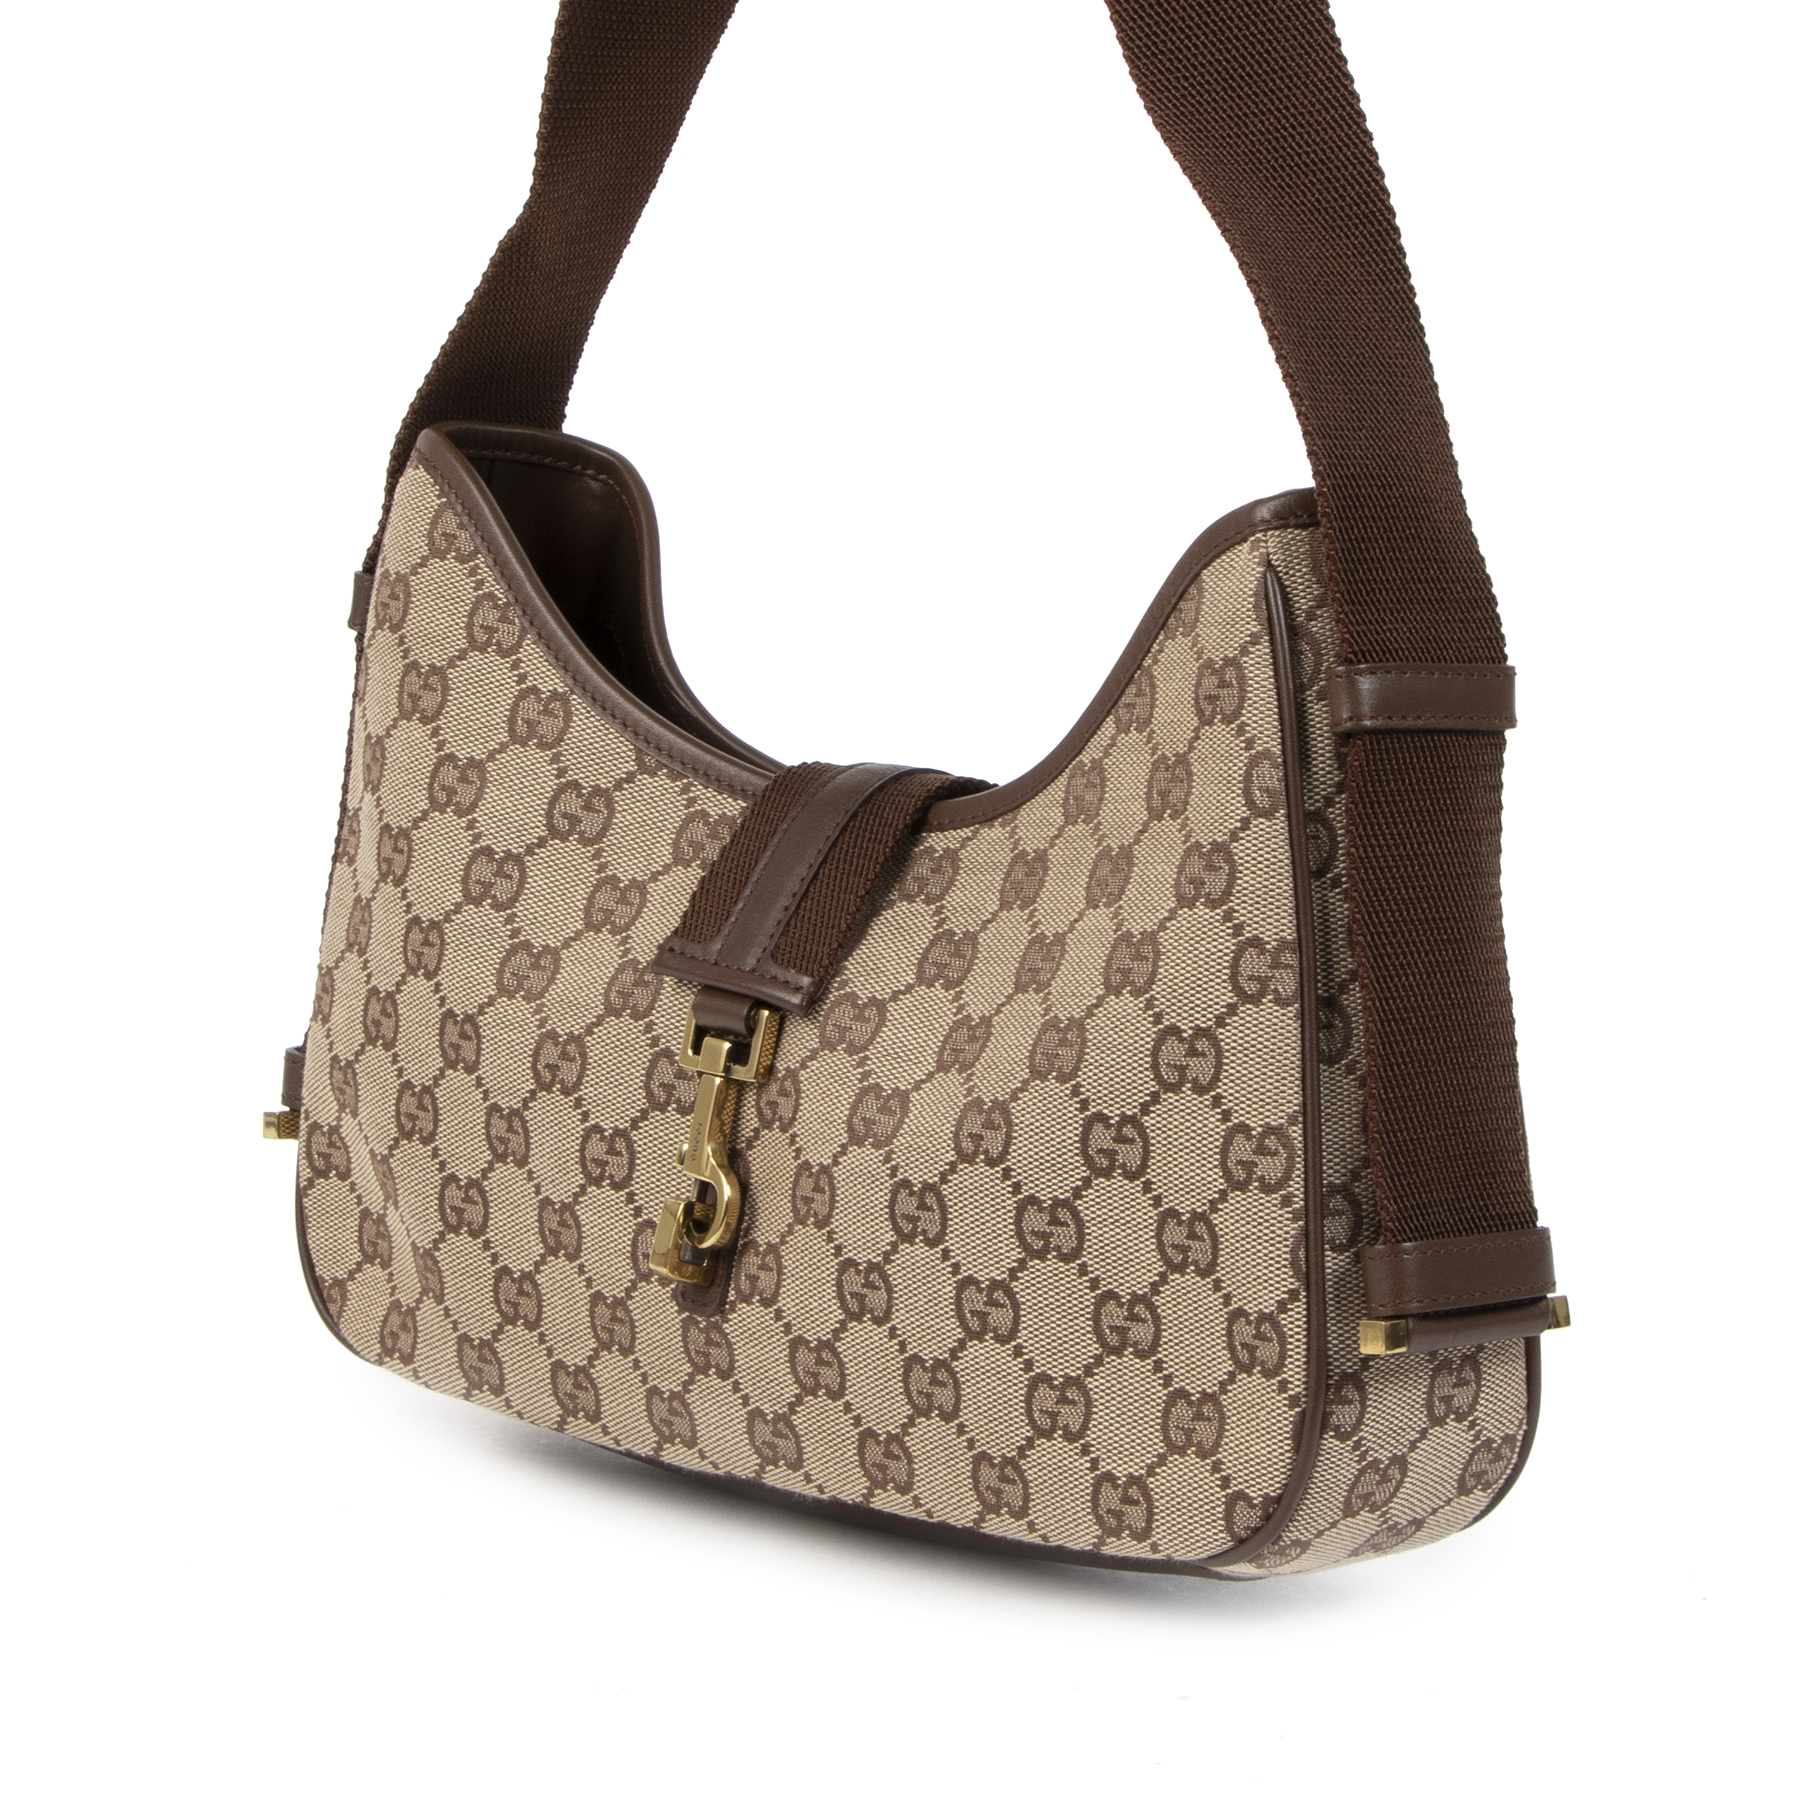 Buy authentic secondhand Gucci Monogram Canvas Shoulder bag at the right price online safe and secure at LabelLOV luxury brand webshop Antwerp Belgium